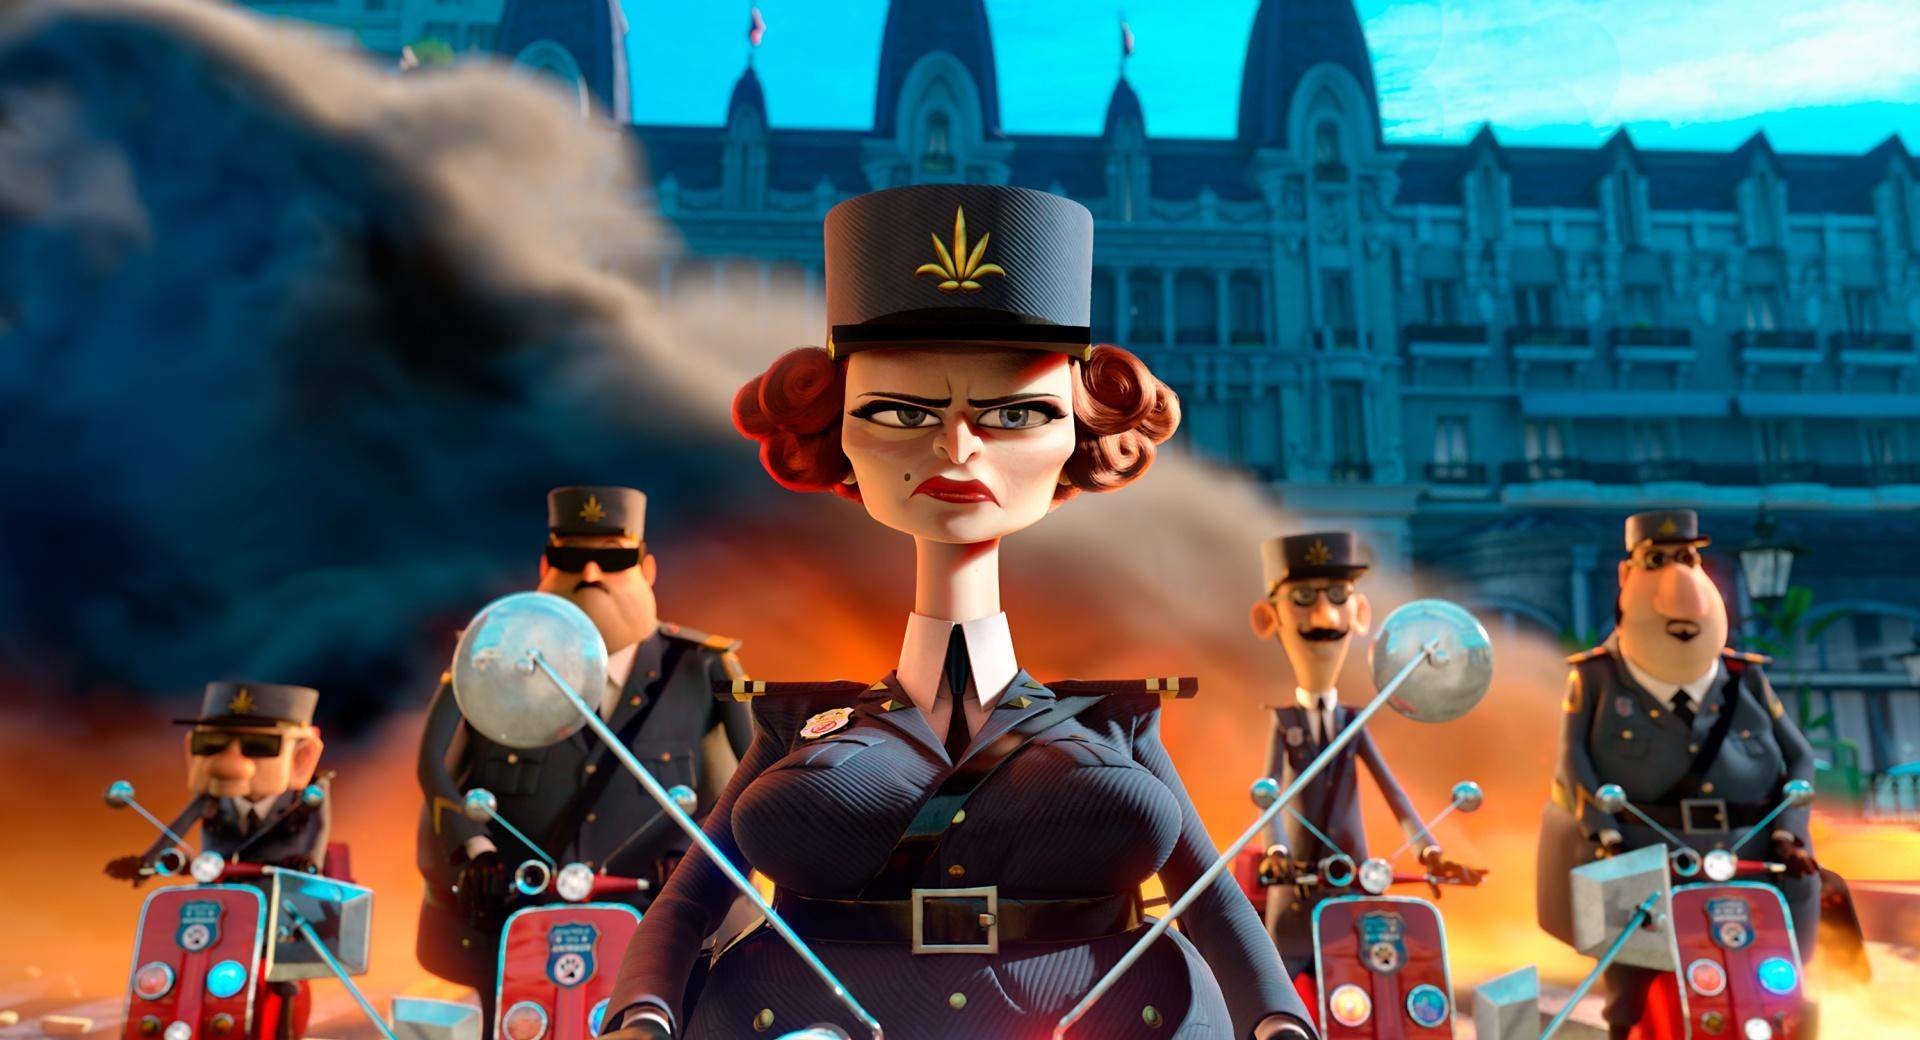 Madagascar 3 Captain Dubois at 1600 x 1200 size wallpapers HD quality